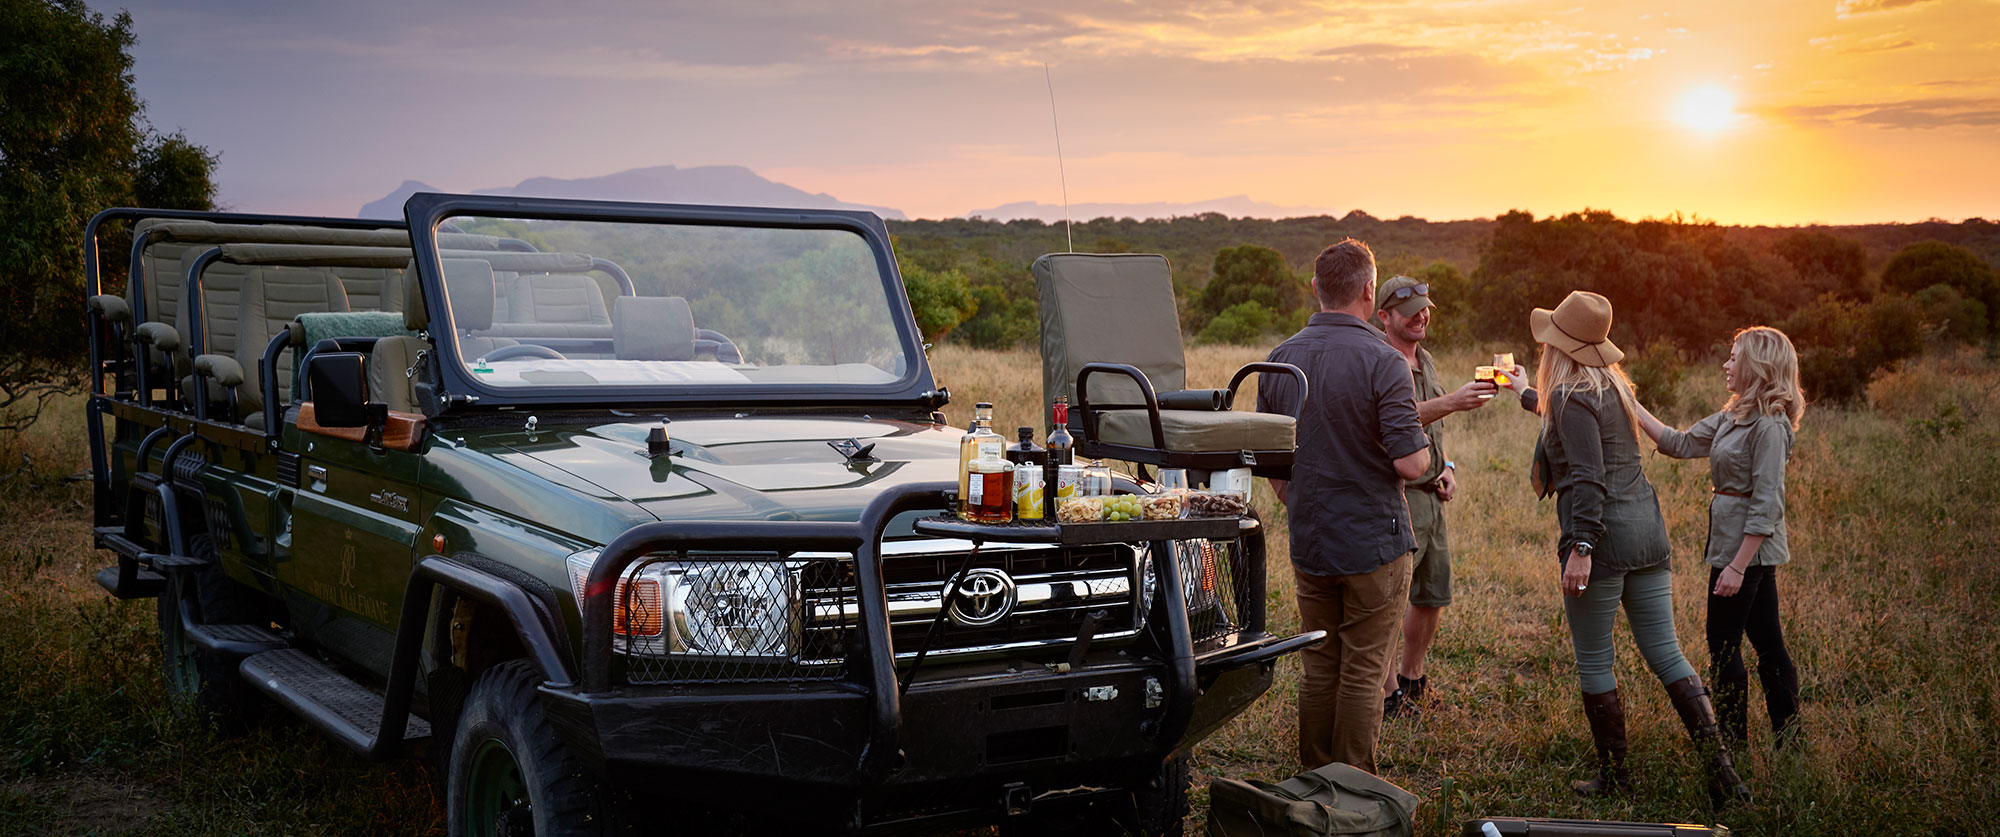 Luxury South Africa Travel Packages - Royal Malewane safari lodge, Thornybush Private Game Reserve - Sundowners on game drive